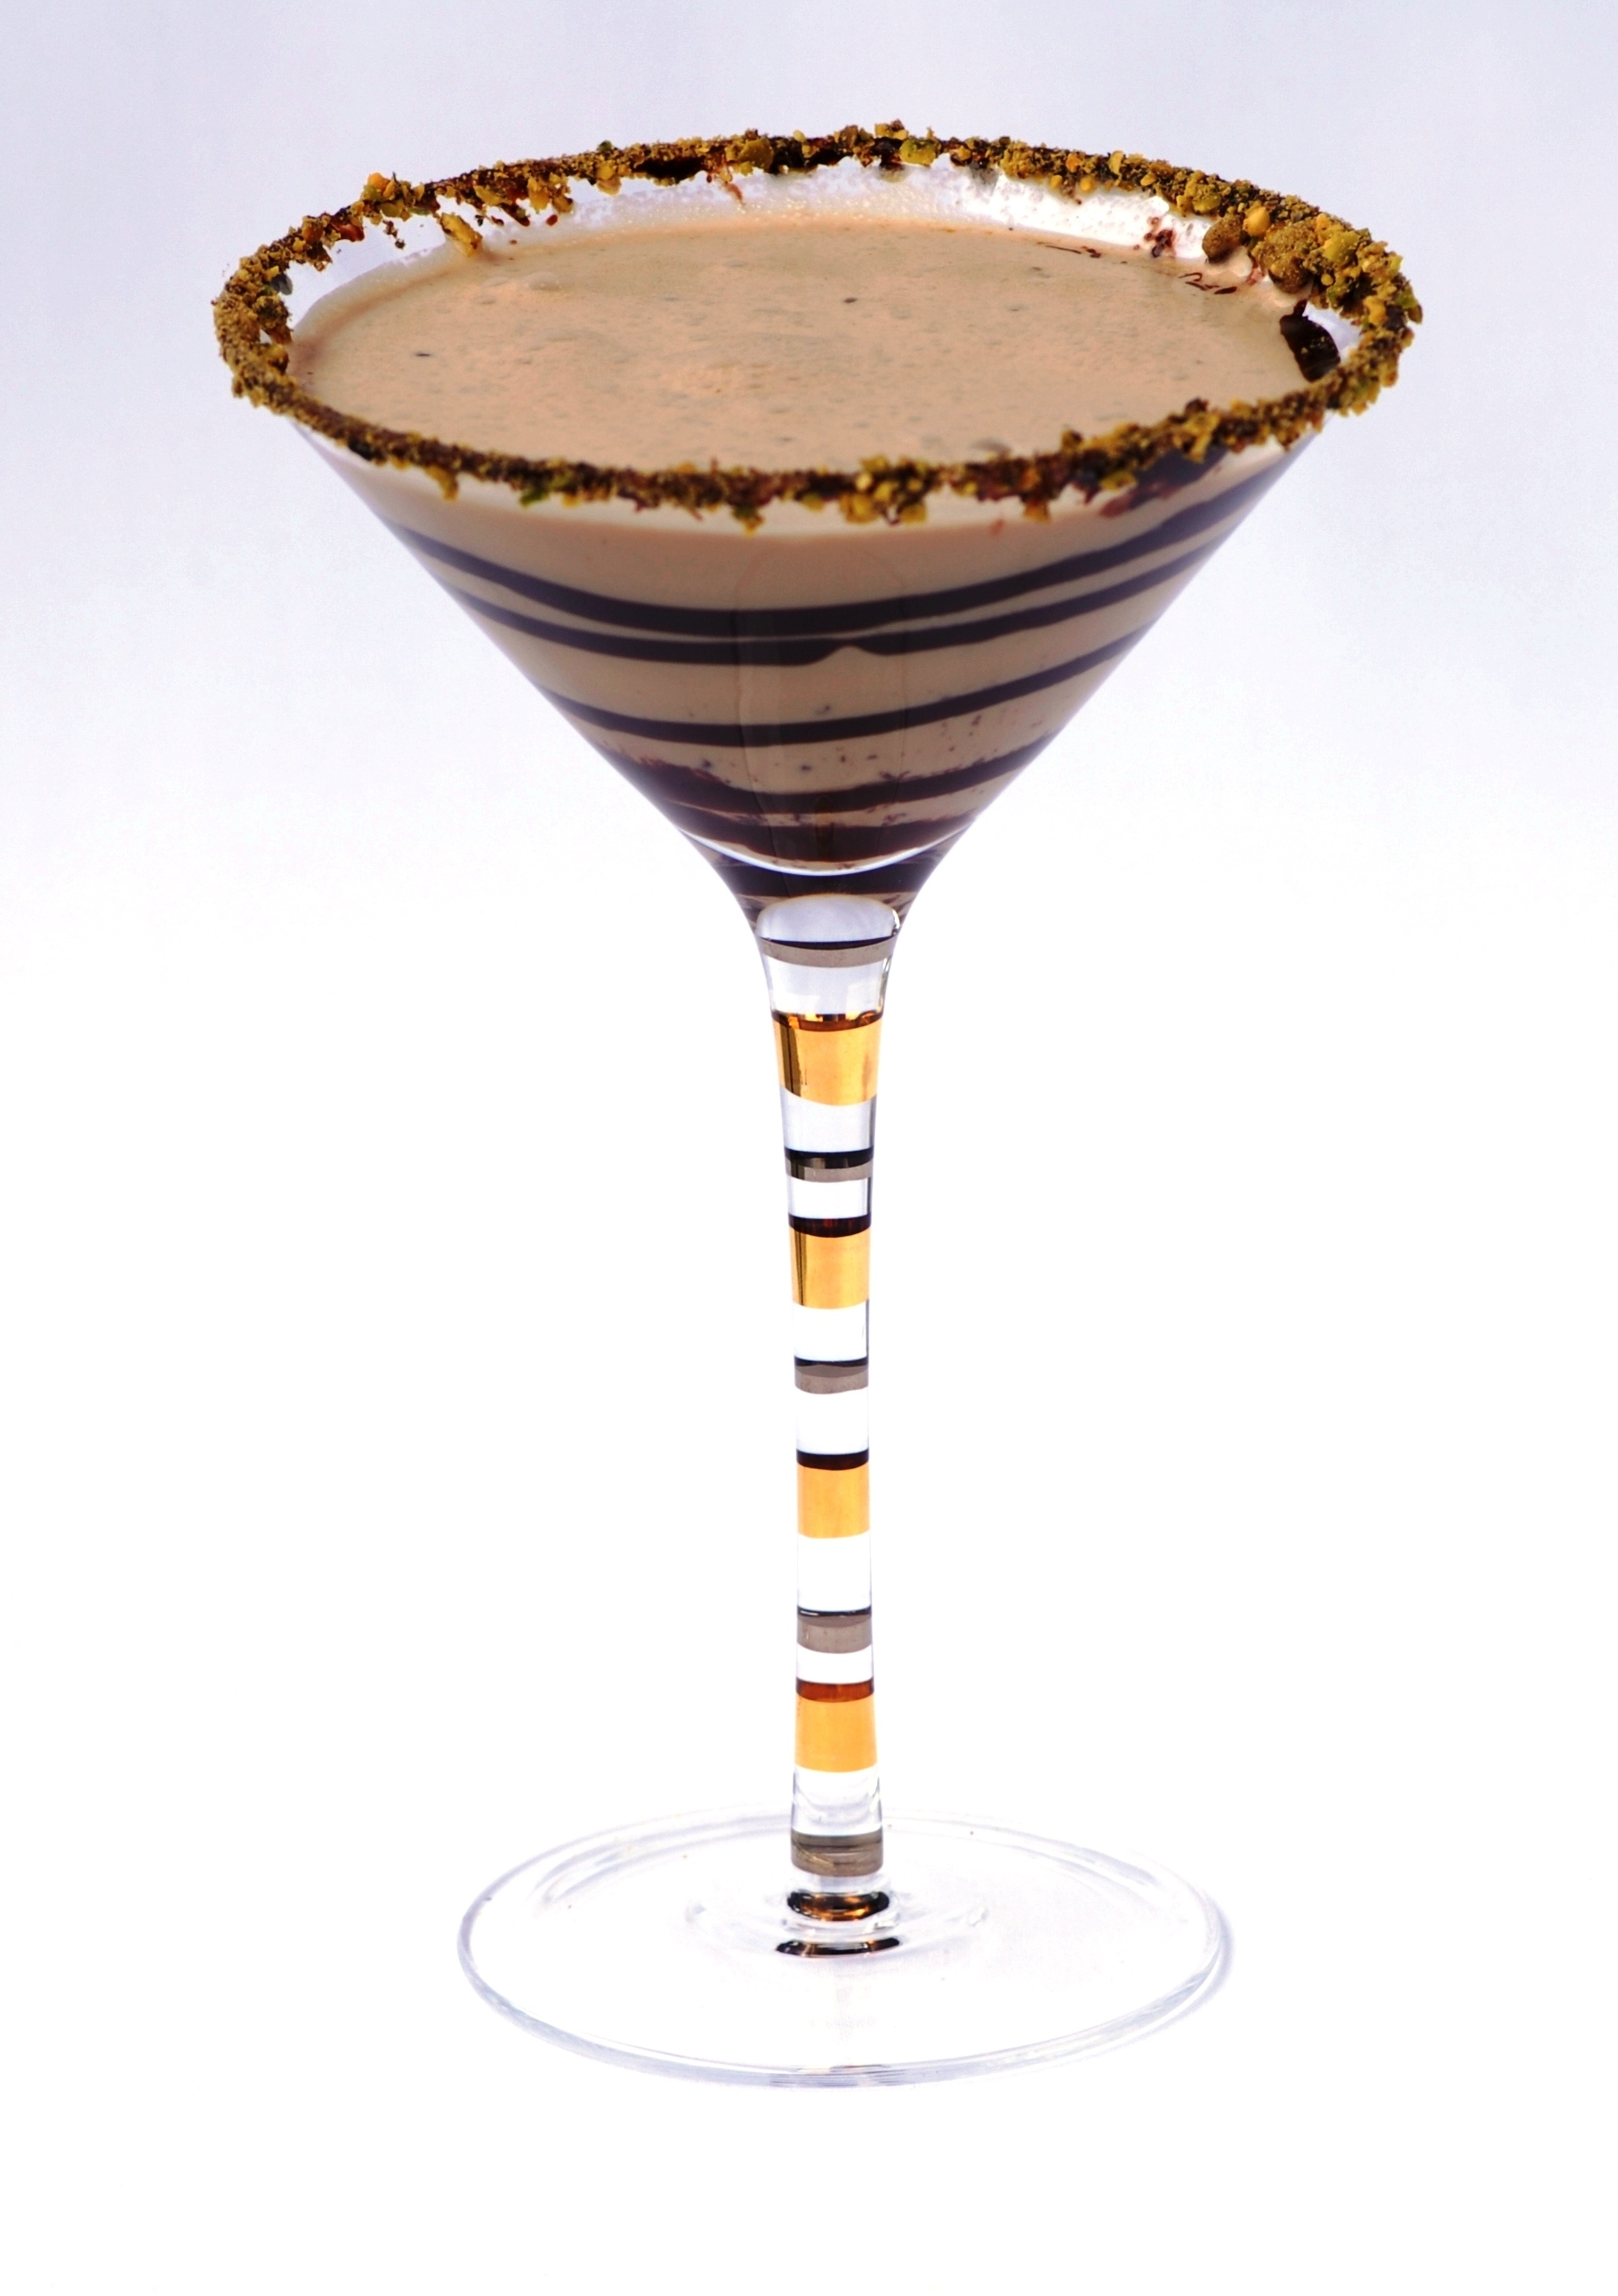 Beetle Juice Cocktail by Armando Rosario, Southern Glazer's Master Mixologist (Photo: Business Wire)